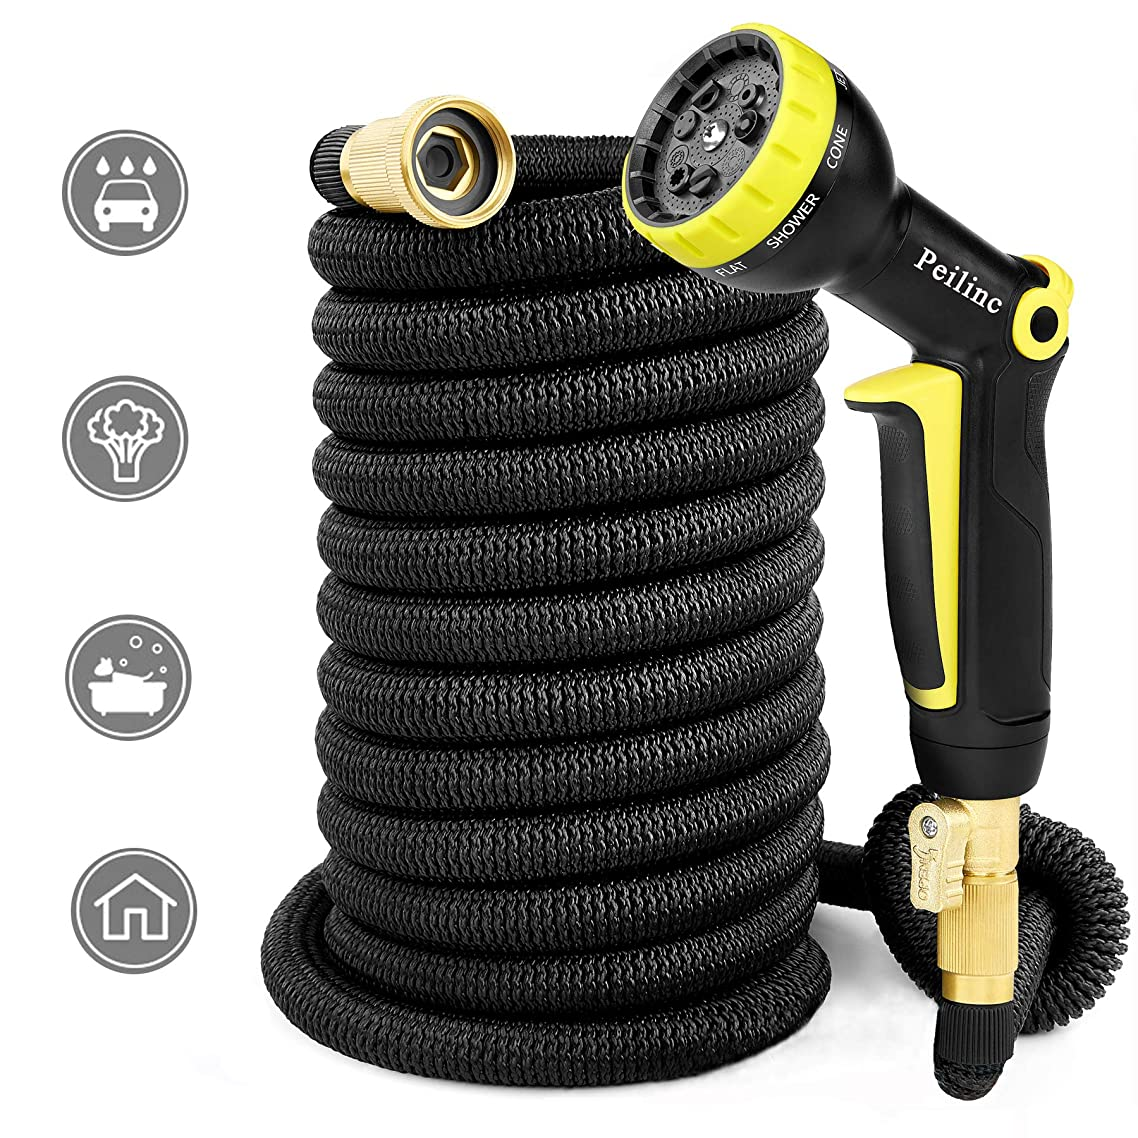 50FT Expandable Garden Hose Black – Brass Household Telescopic Water Pipe 9-Mode Nozzle, Cleaning Gardening Watering Pipe, High Pressure Watertight